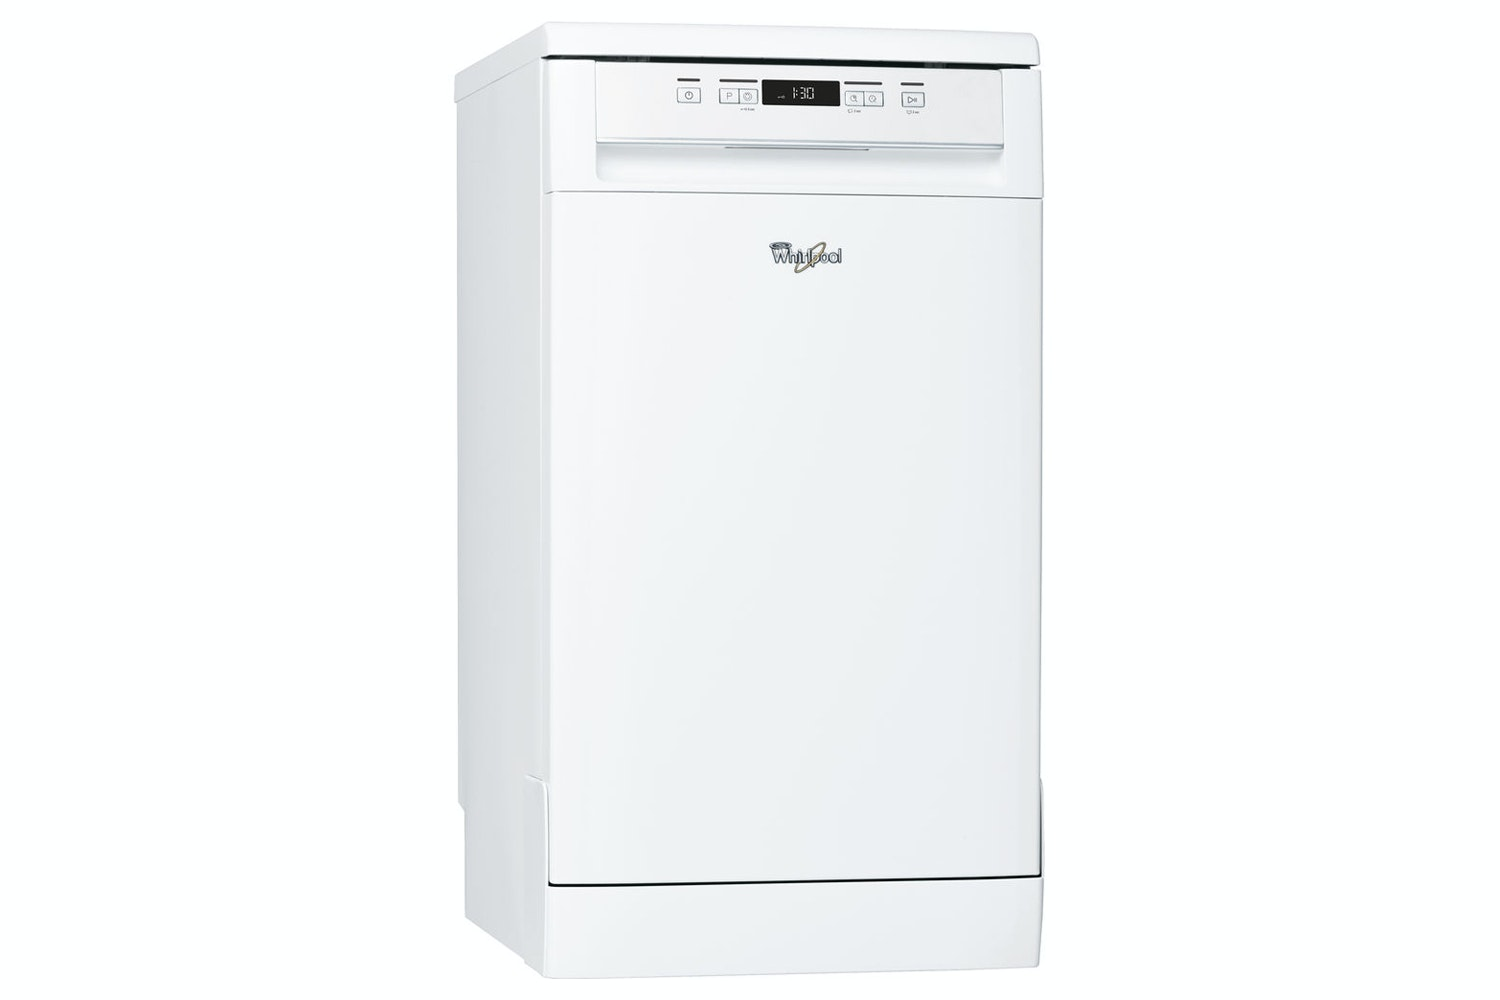 Whirlpool 10 Place Slimline Dishwasher | ADP301WH